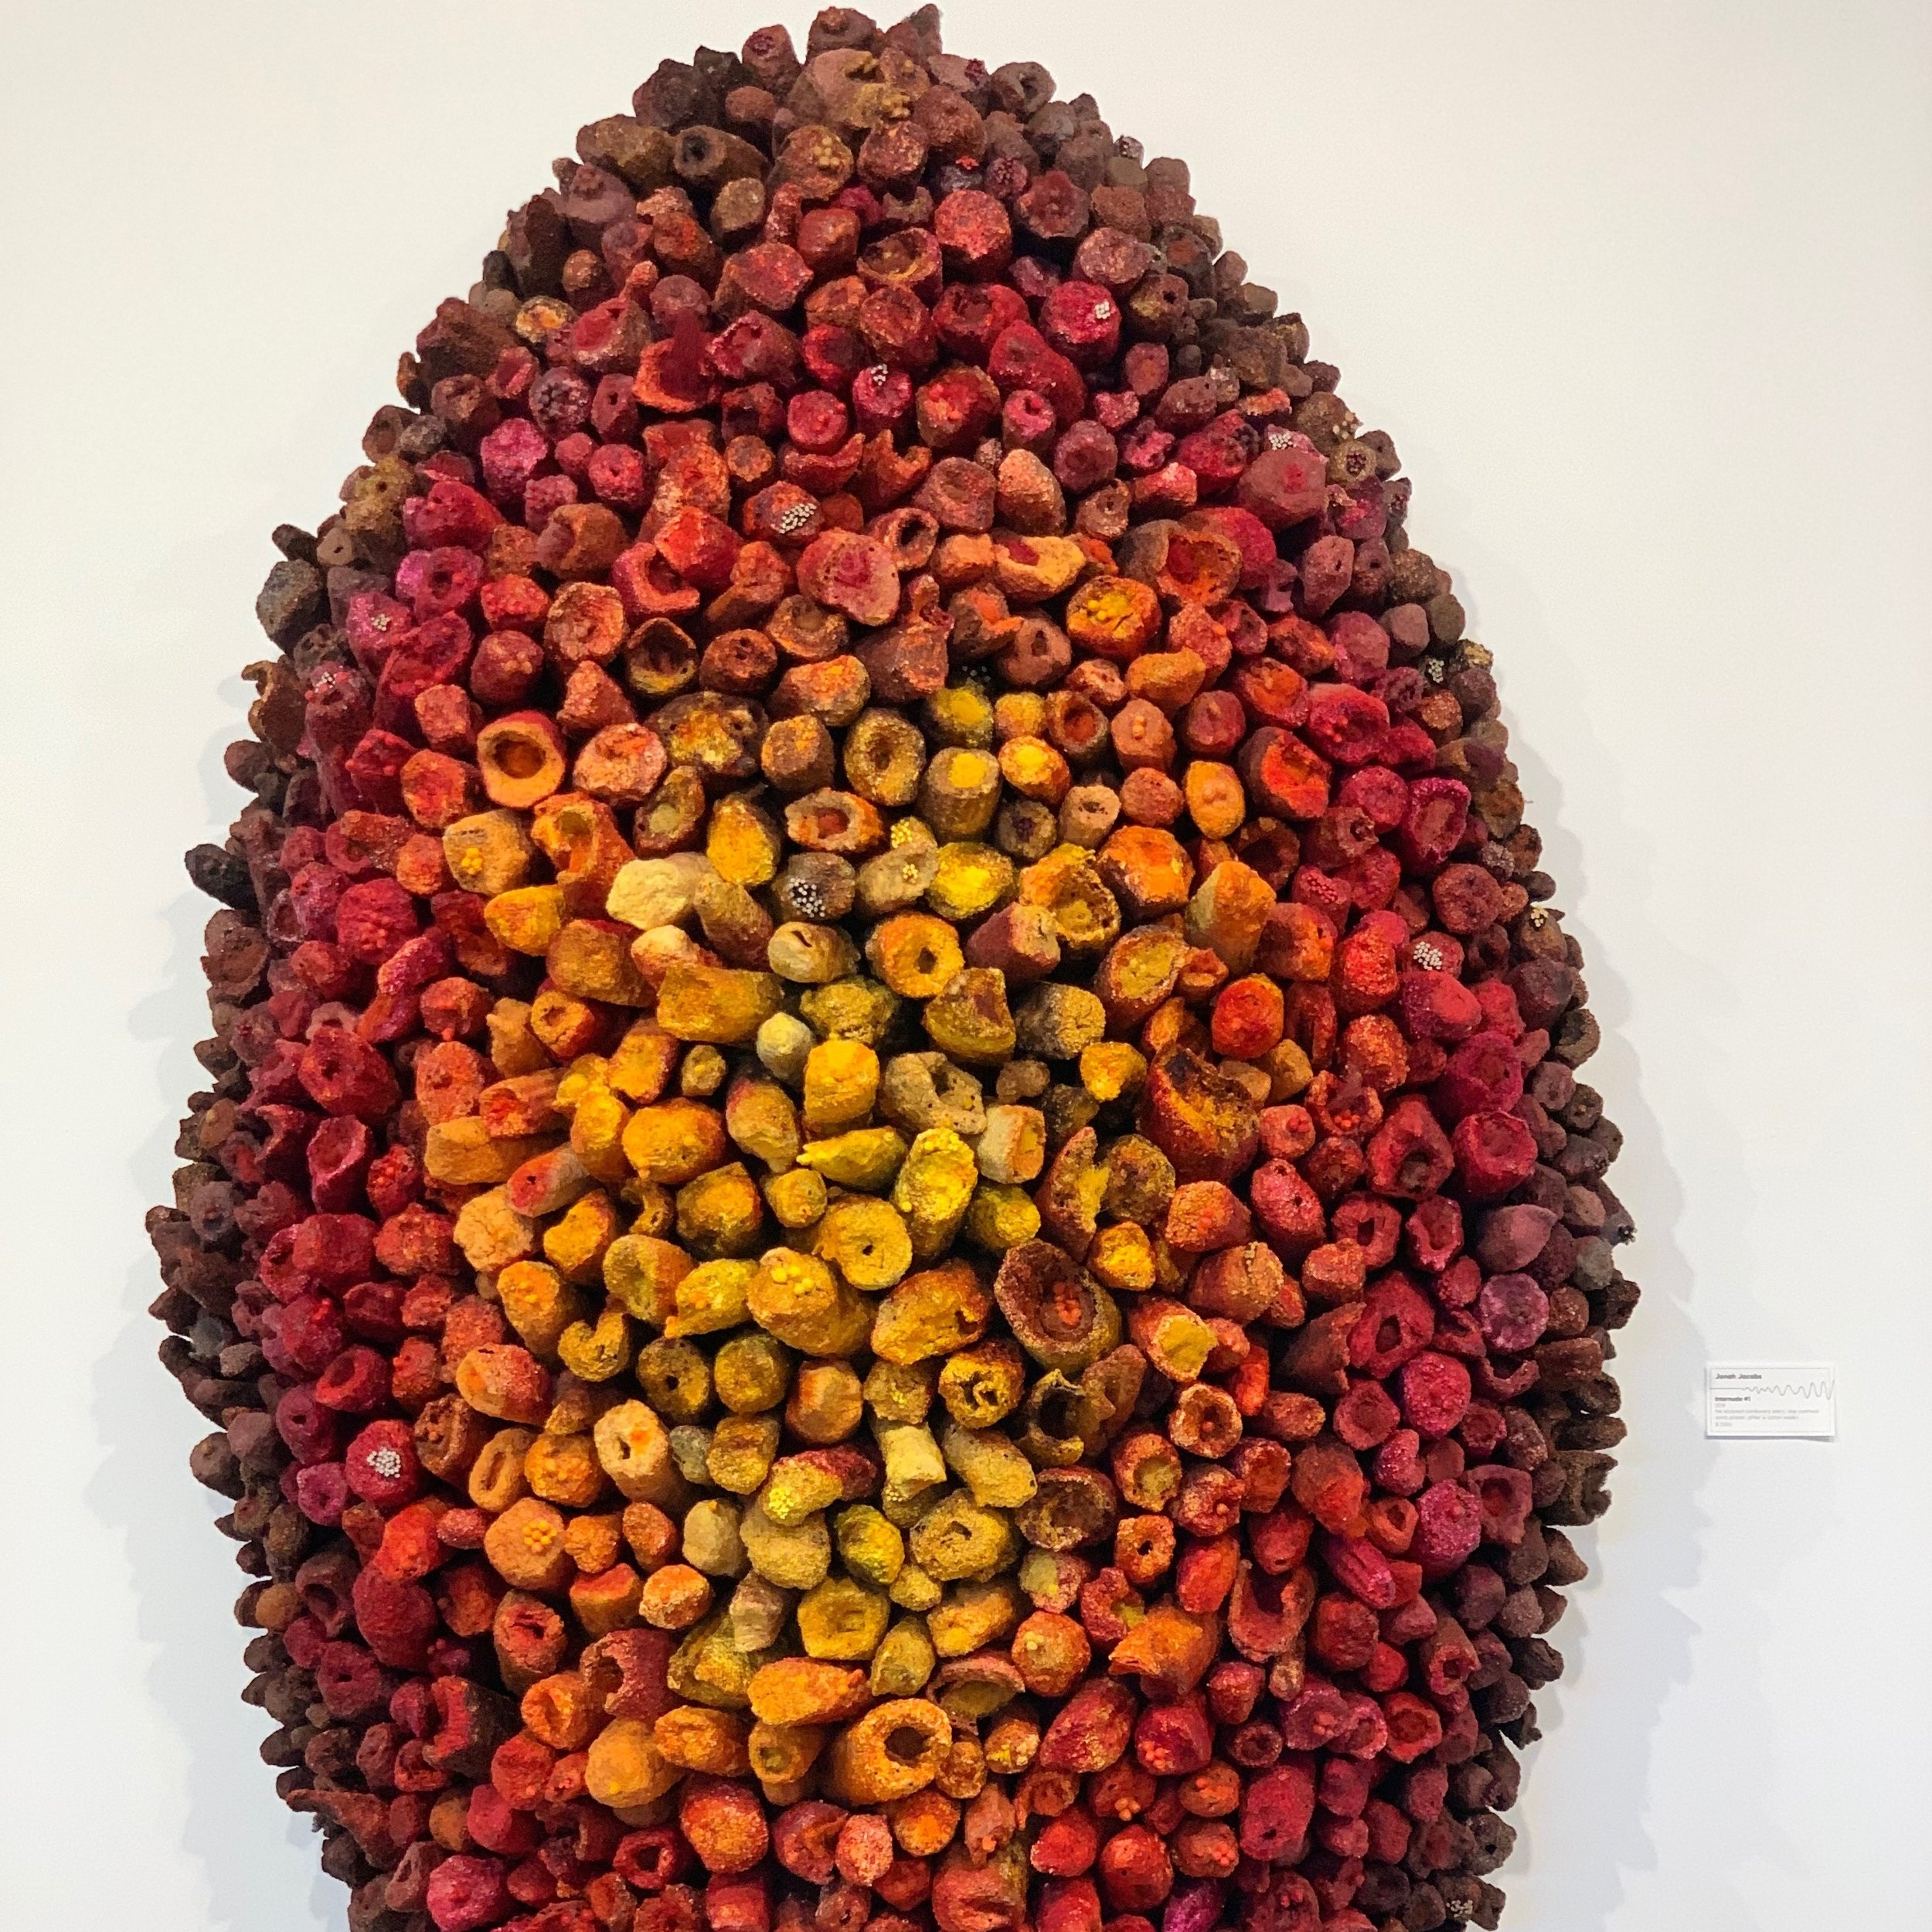 Jonah Jacobs,  Internode #1 , 2018, fire sculpted cardboard, paint, dye, oatmeal, sand, plaster, glitter, and cotton swabs, $2000